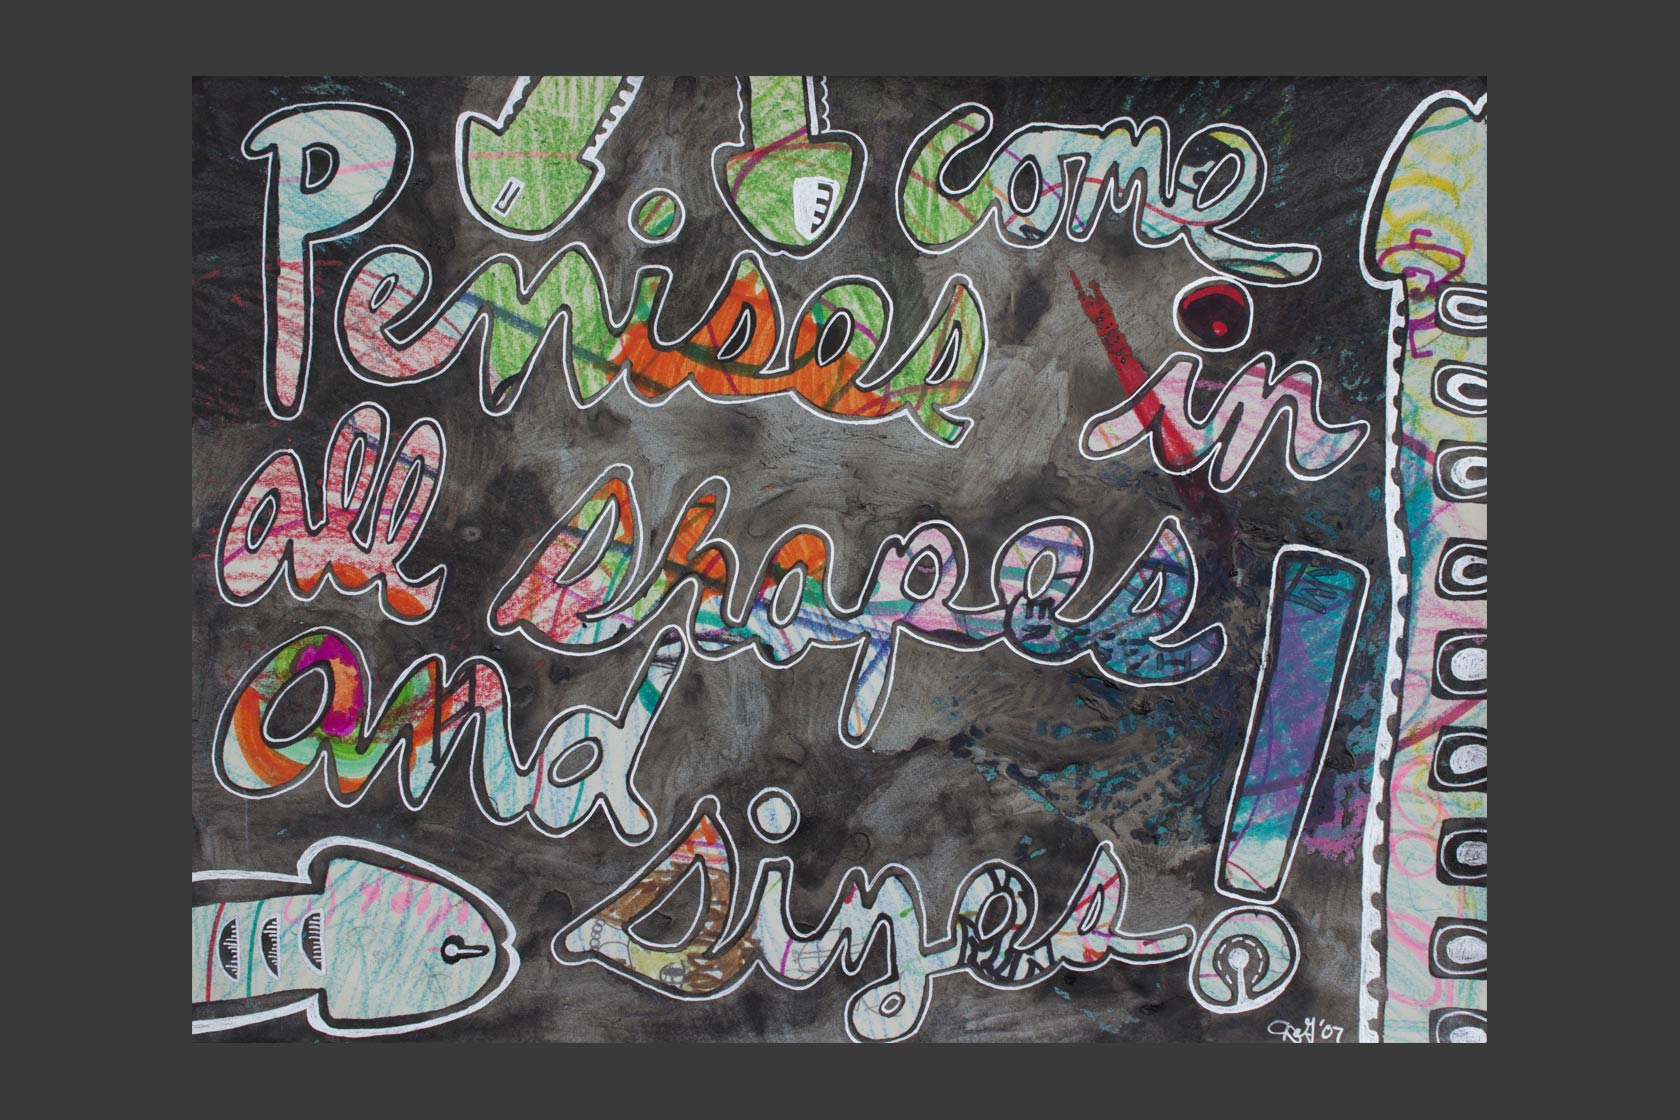 Puberty & You, Envelope Show Gallery Pink Espace 2003